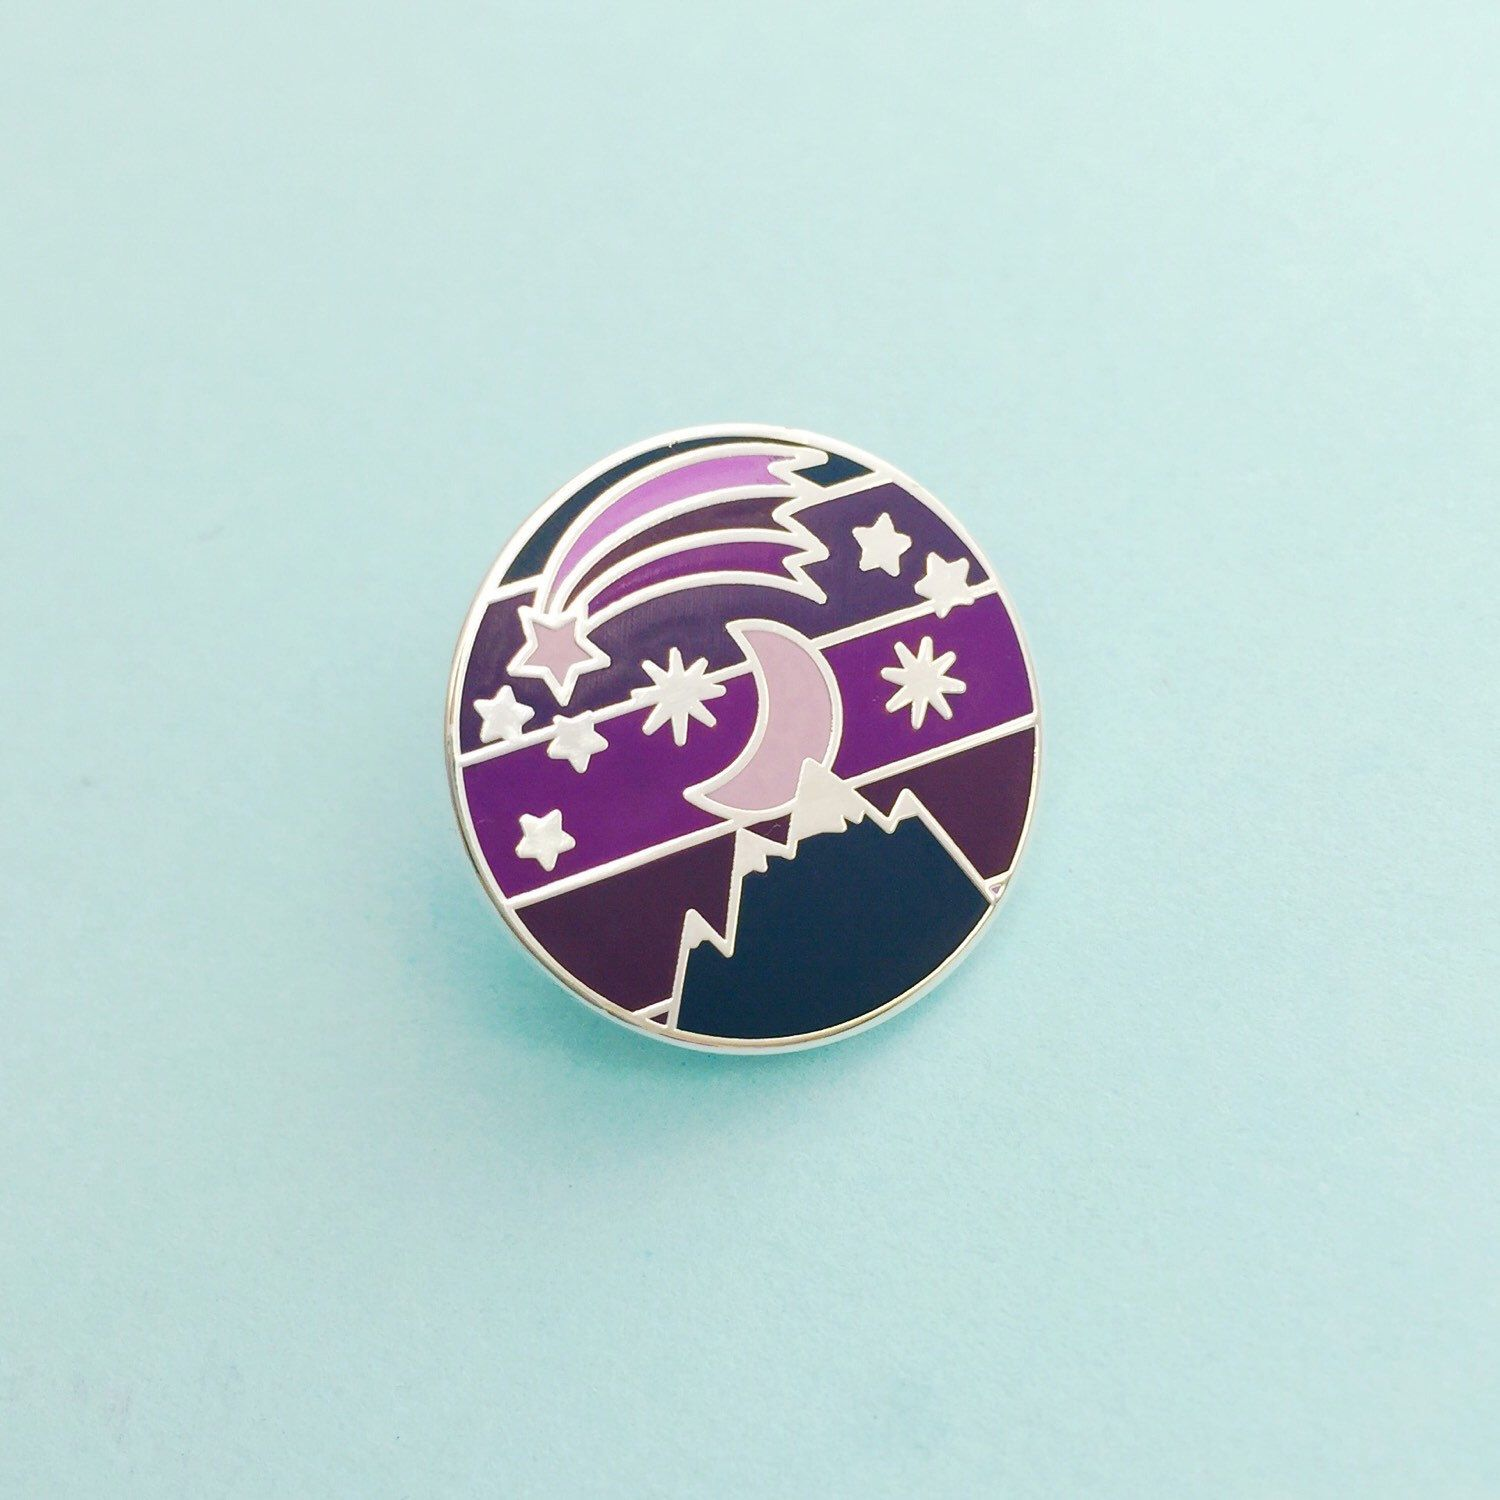 Pinback Buttons Badges Pins Starry Sky Colorful Lapel Pin Brooch Clip Trendy Accessory Jacket T-Shirt Bag Hat Shoe